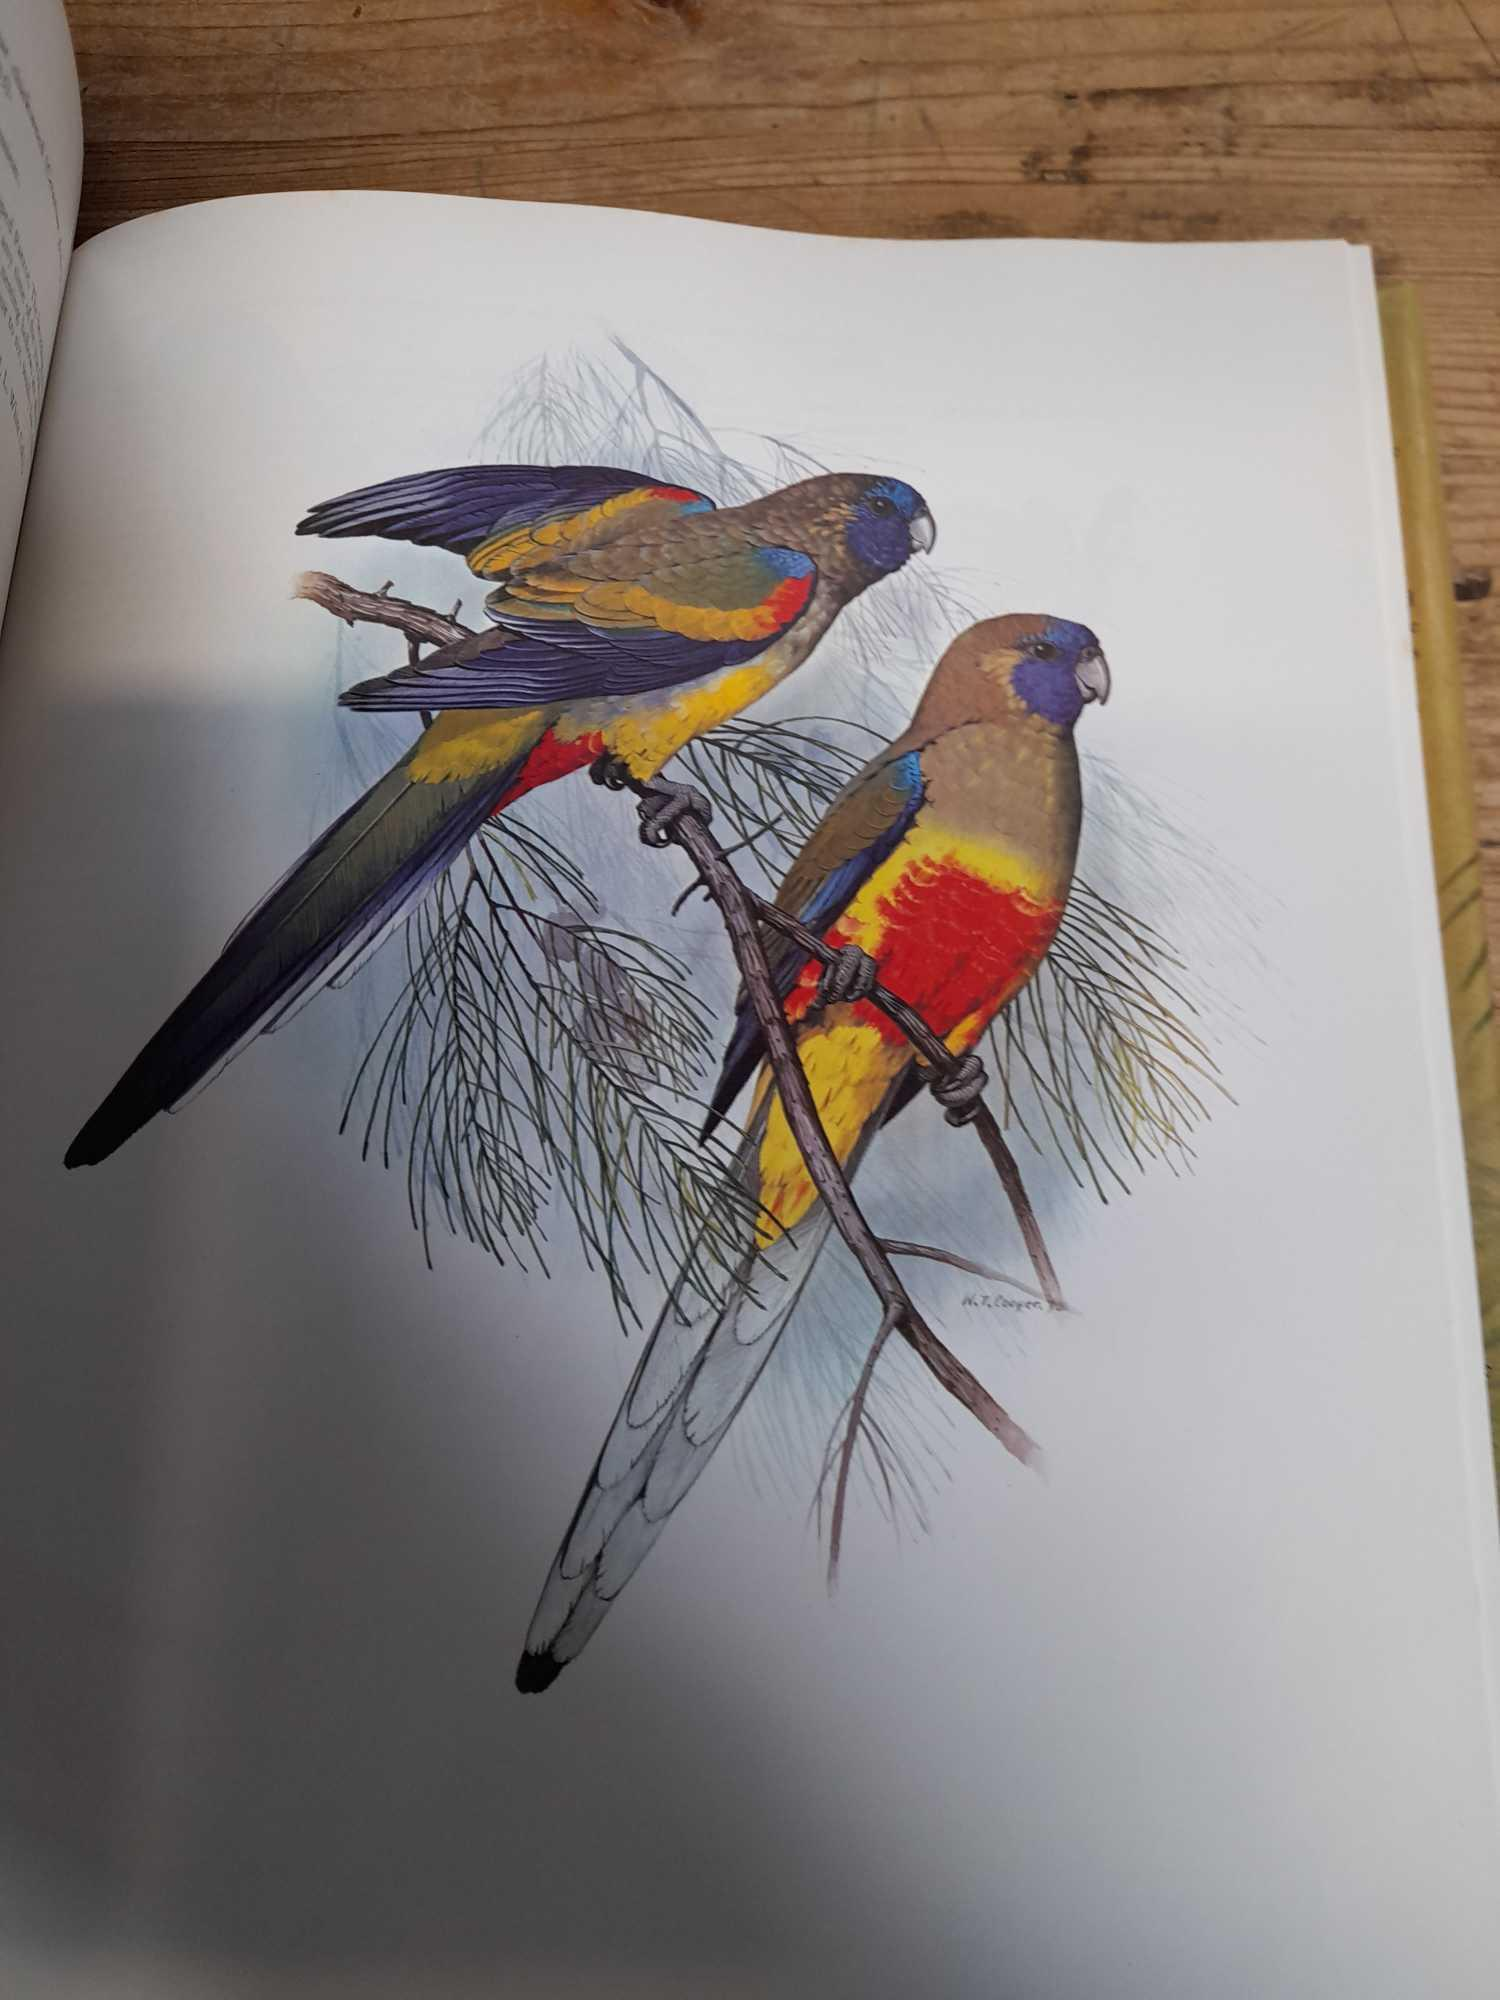 3 PARROT BOOKS - Image 17 of 20